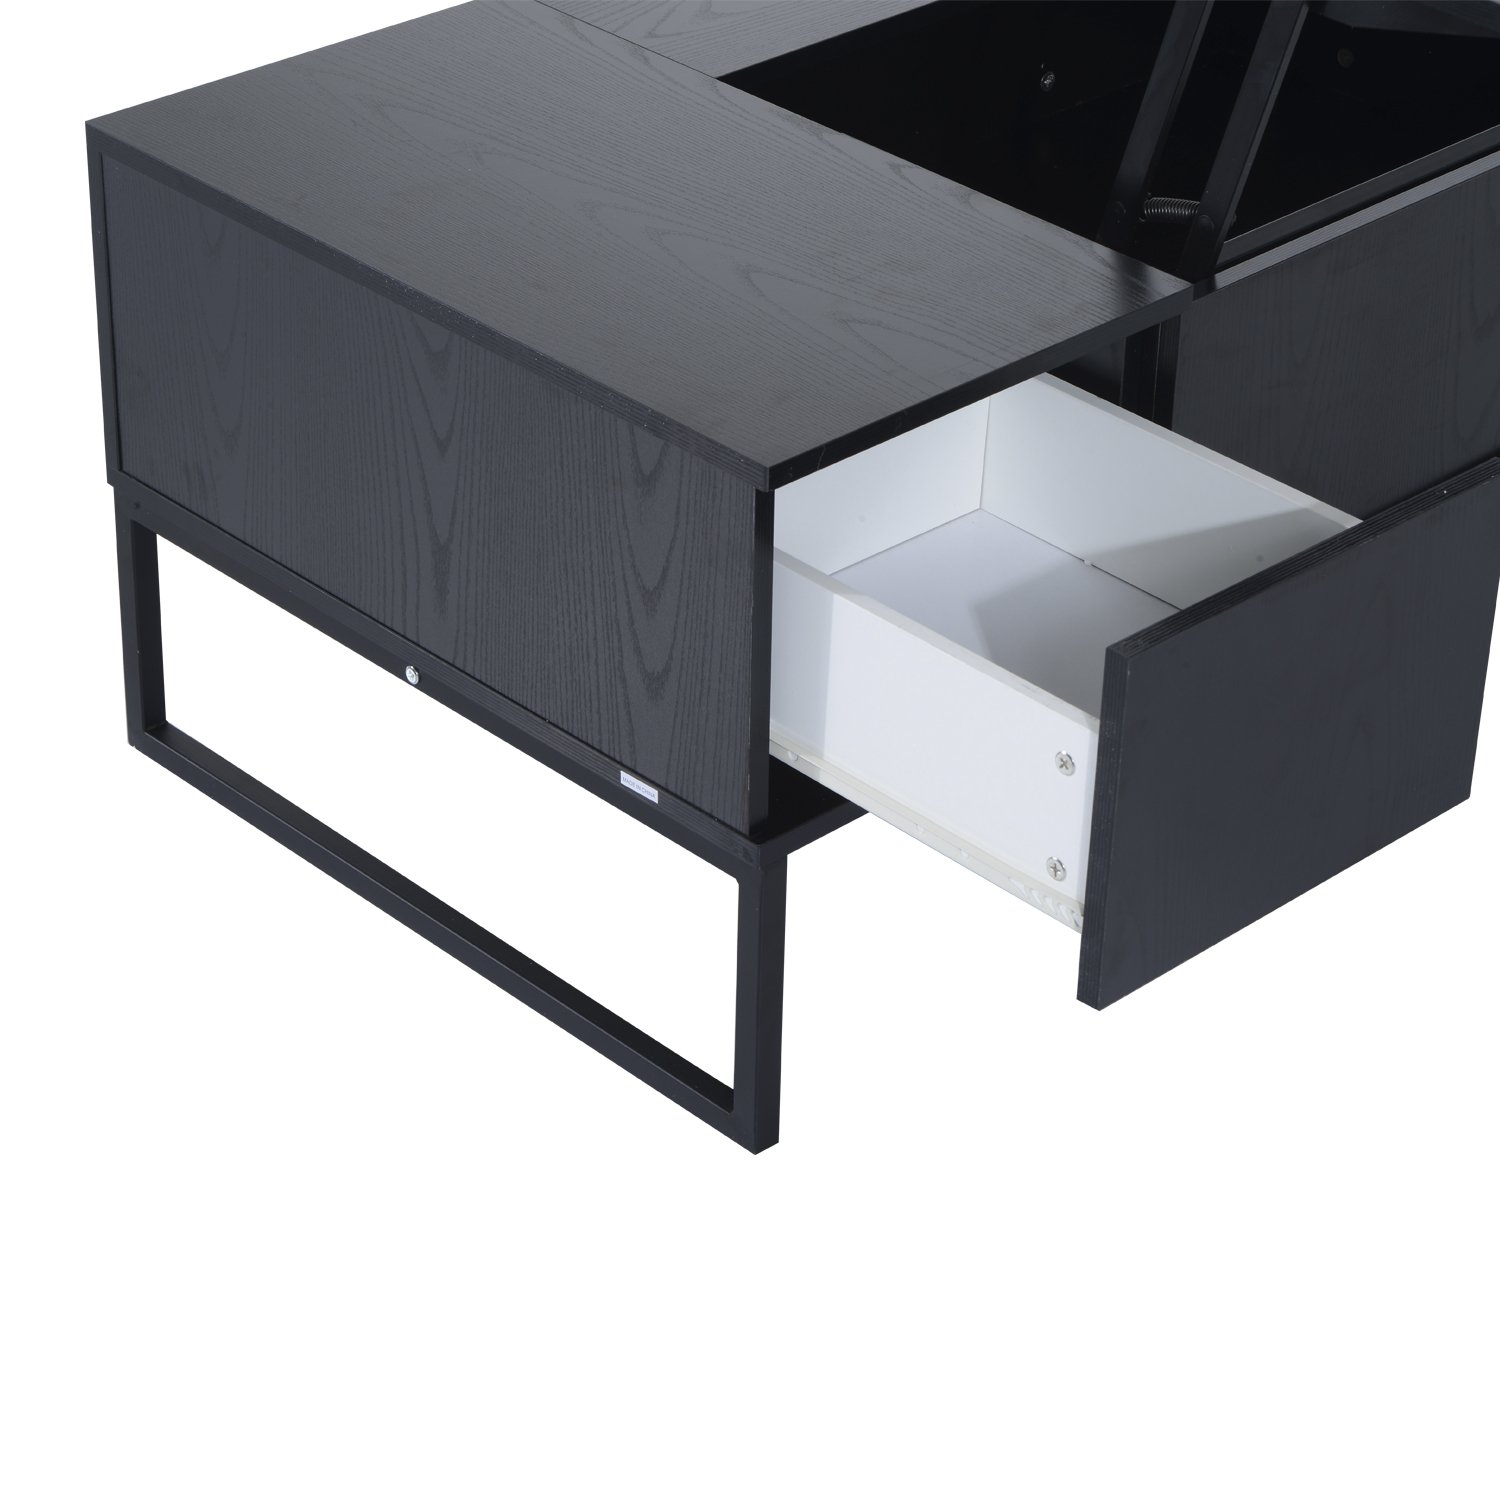 homcom foldable wood lift top coffee table convertible tea desk  - homcom foldable wood lift top coffee table convertible tea desk furniturewith  storage drawer tray black amazonca home  kitchen